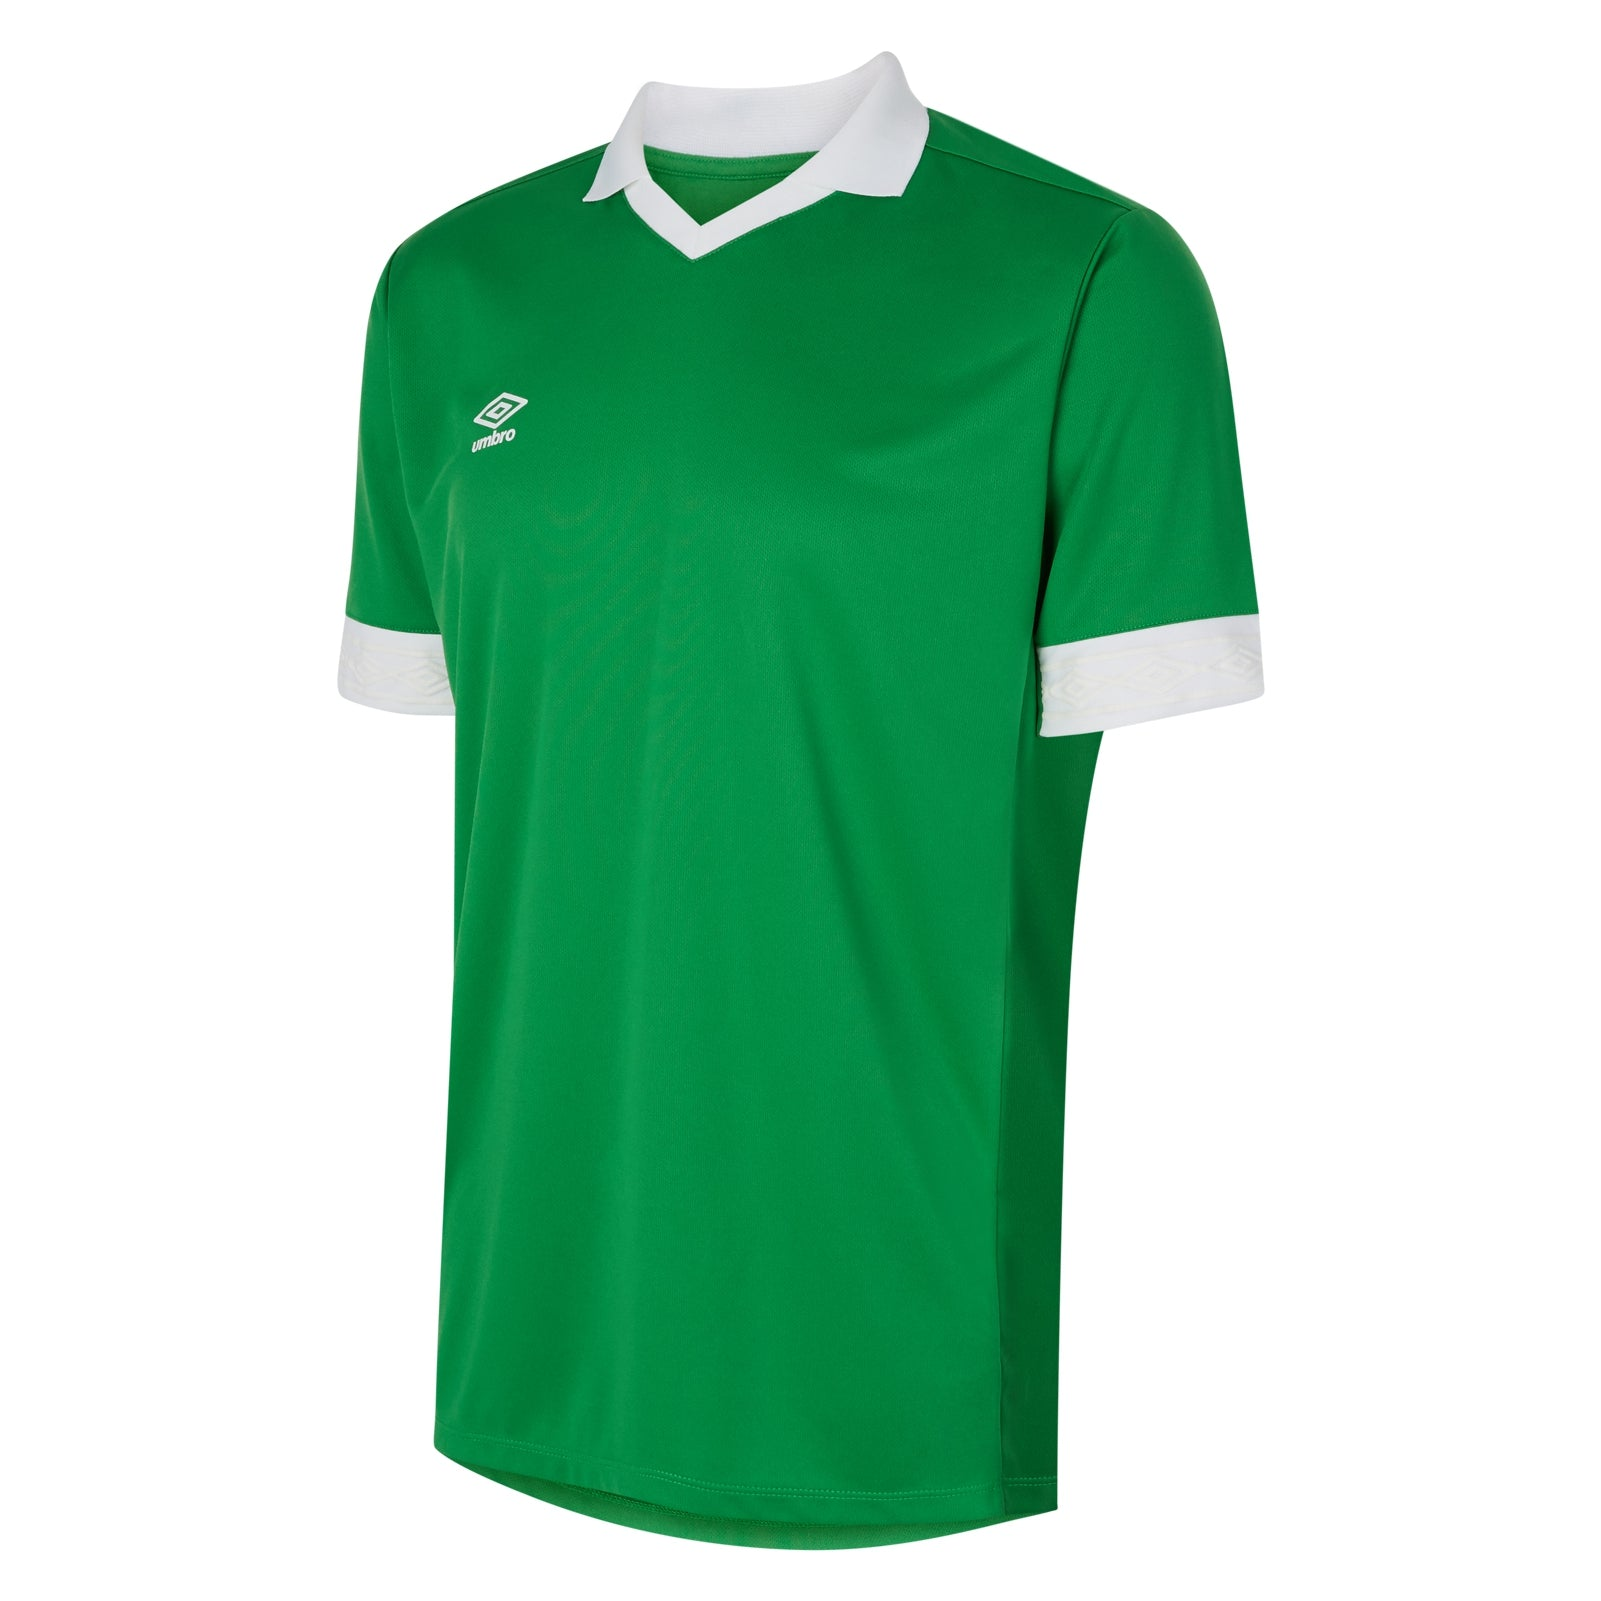 Umbro Tempest jersey short sleeve in emerald green with contrast white collar and cuff